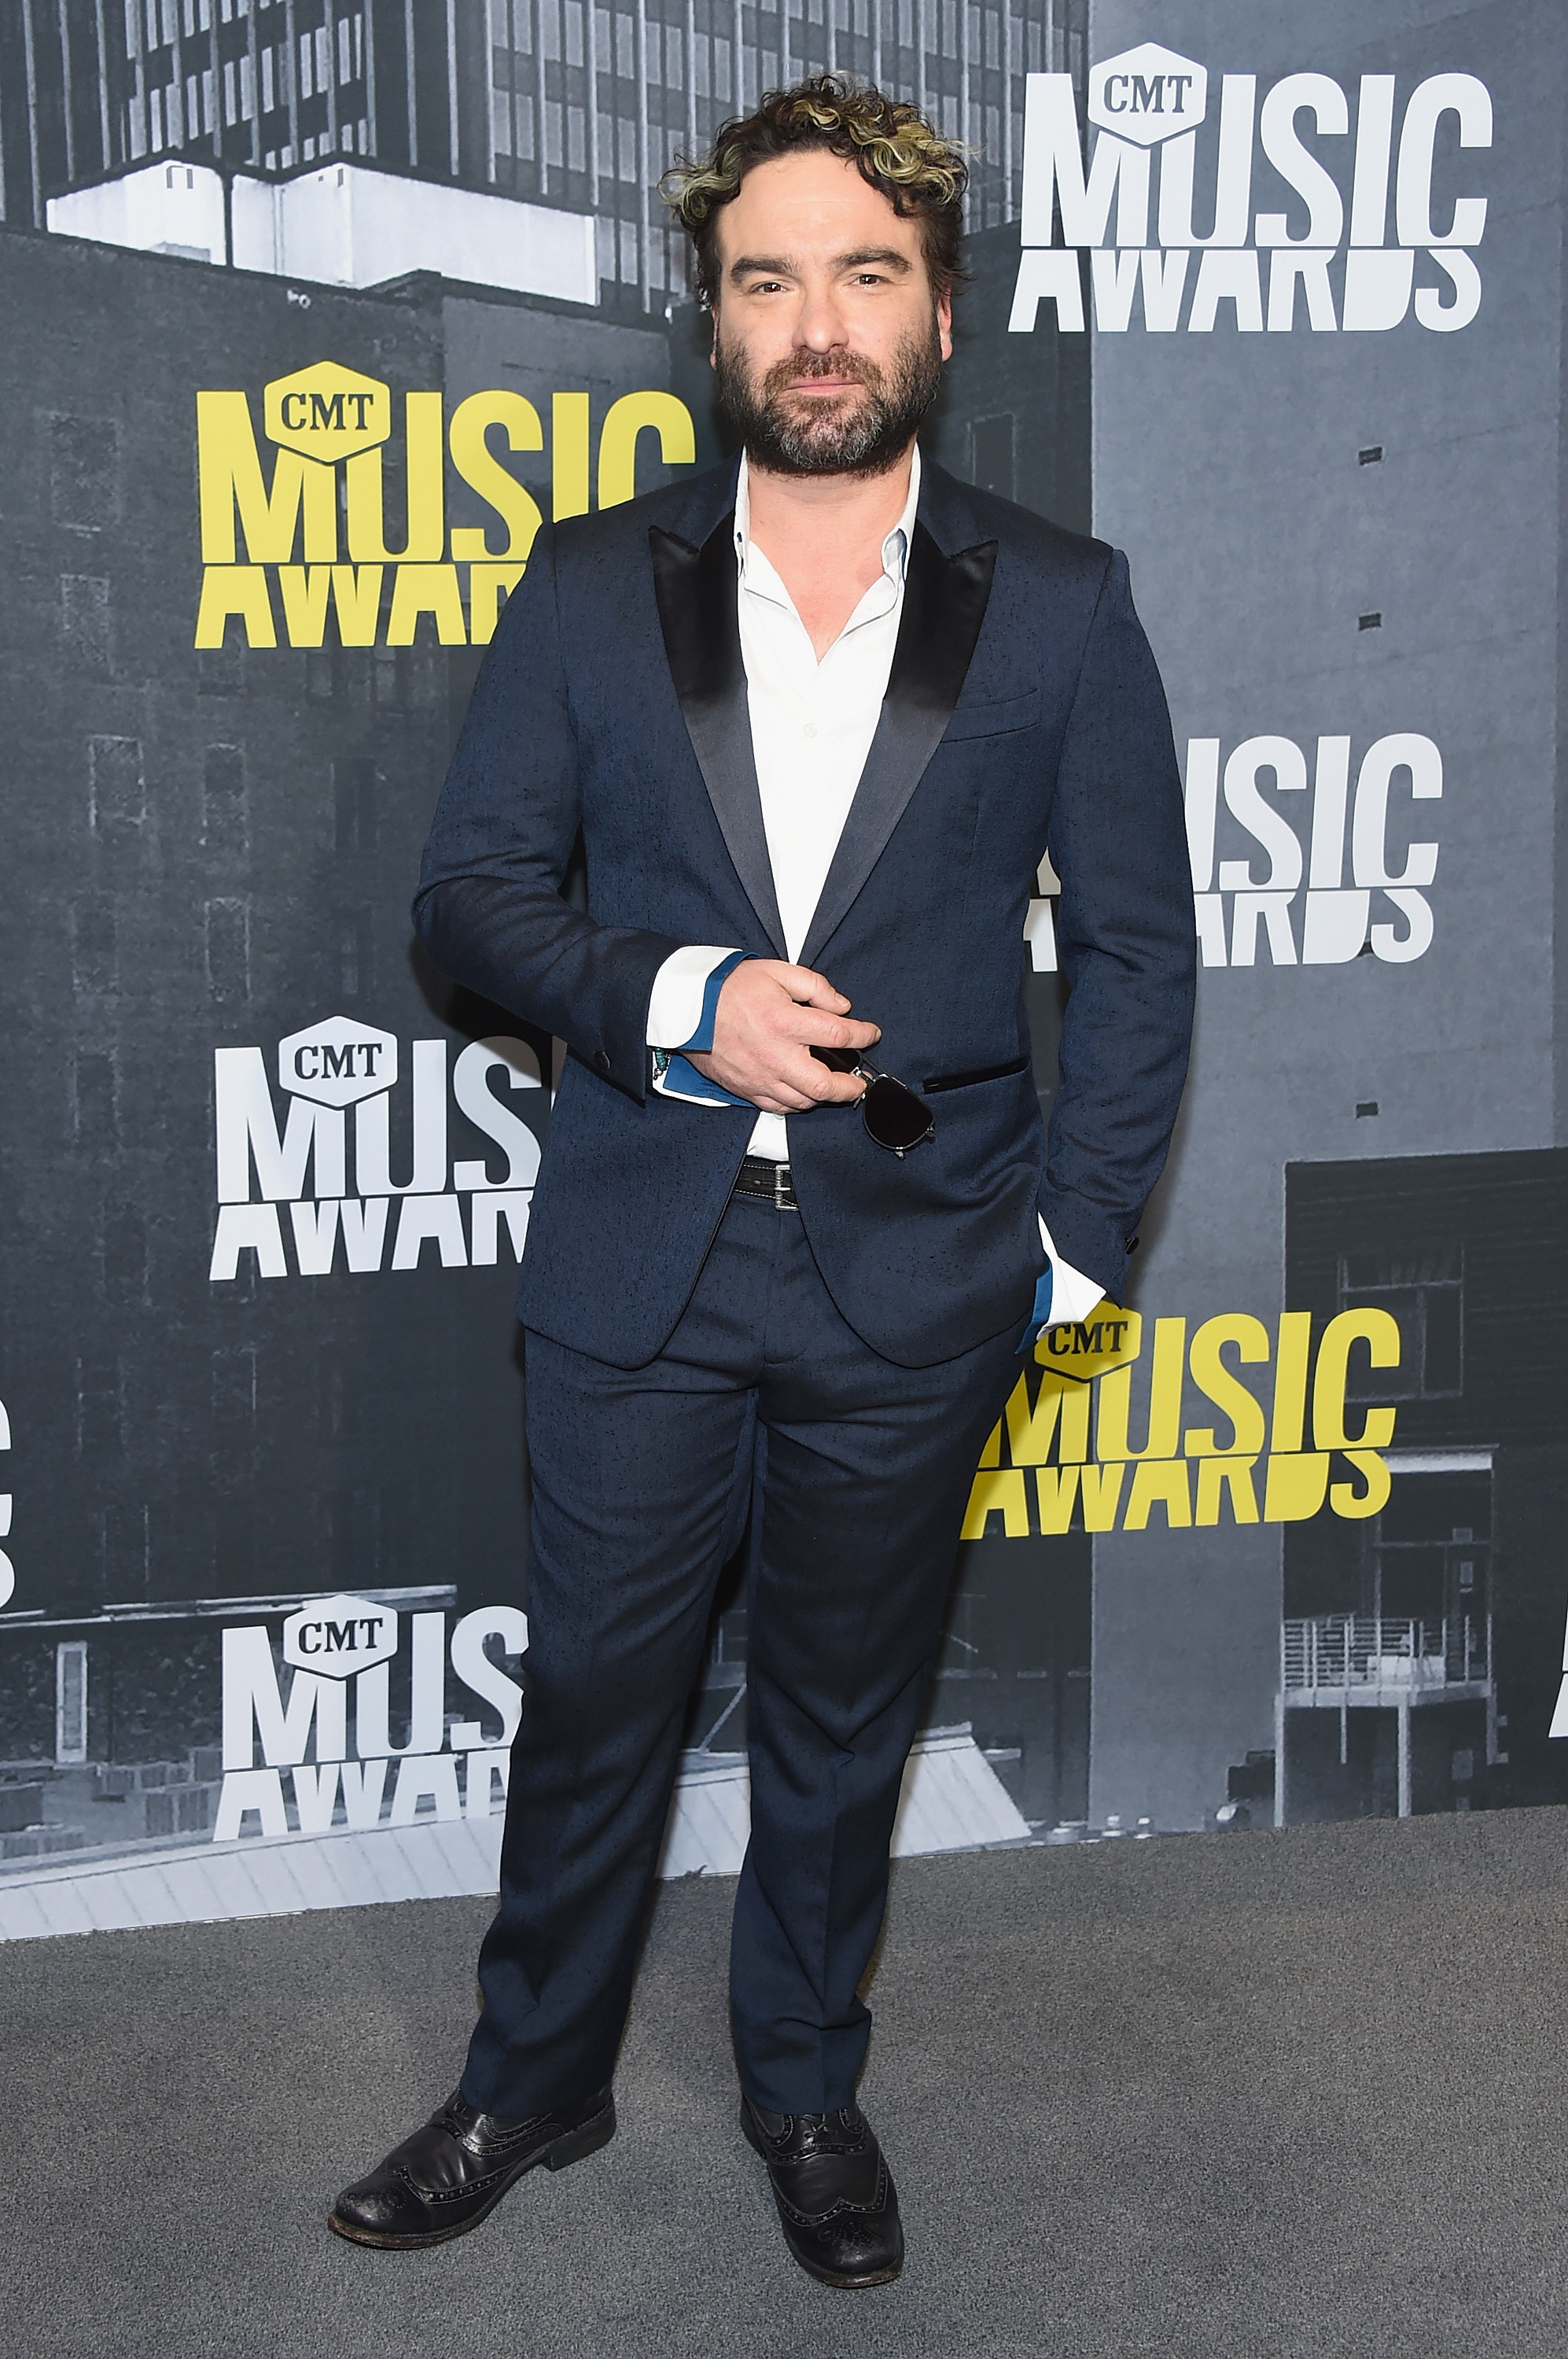 Actor Johnny Galecki attends the 2017 CMT Music Awards at the Music City Center on June 7, 2017 in Nashville, Tennessee.